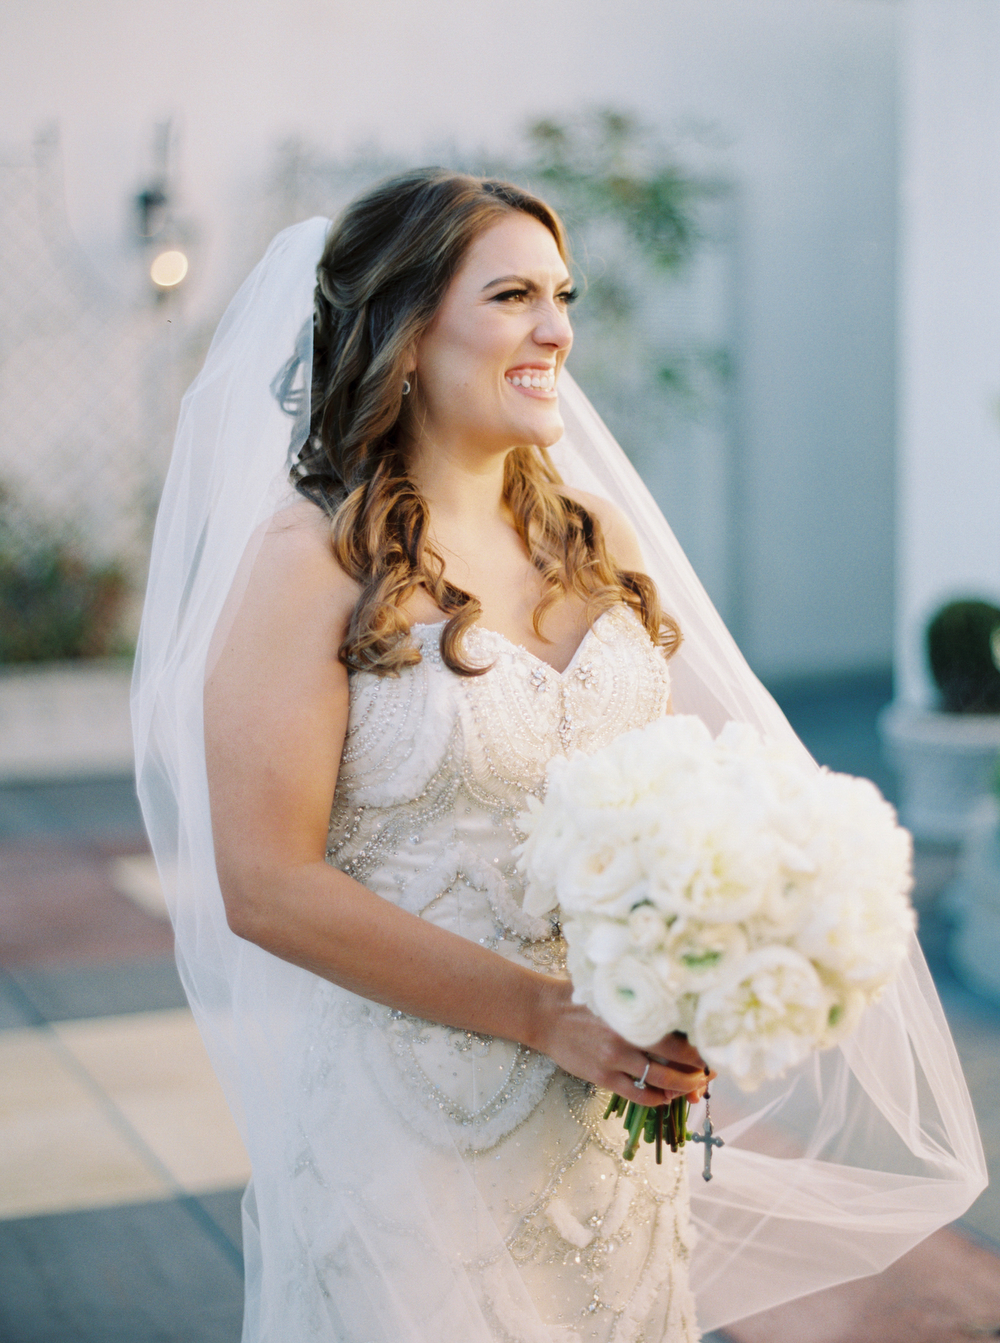 Bridal portrait on the rooftop | Urban wedding | How to transform an open ballroom with stunning decor | Sapphire Events | Greer G Photography | Board of Trade | White and Gold Wedding | Winter Wedding Inspiration | White and Green Wedding | Ballroom wedding